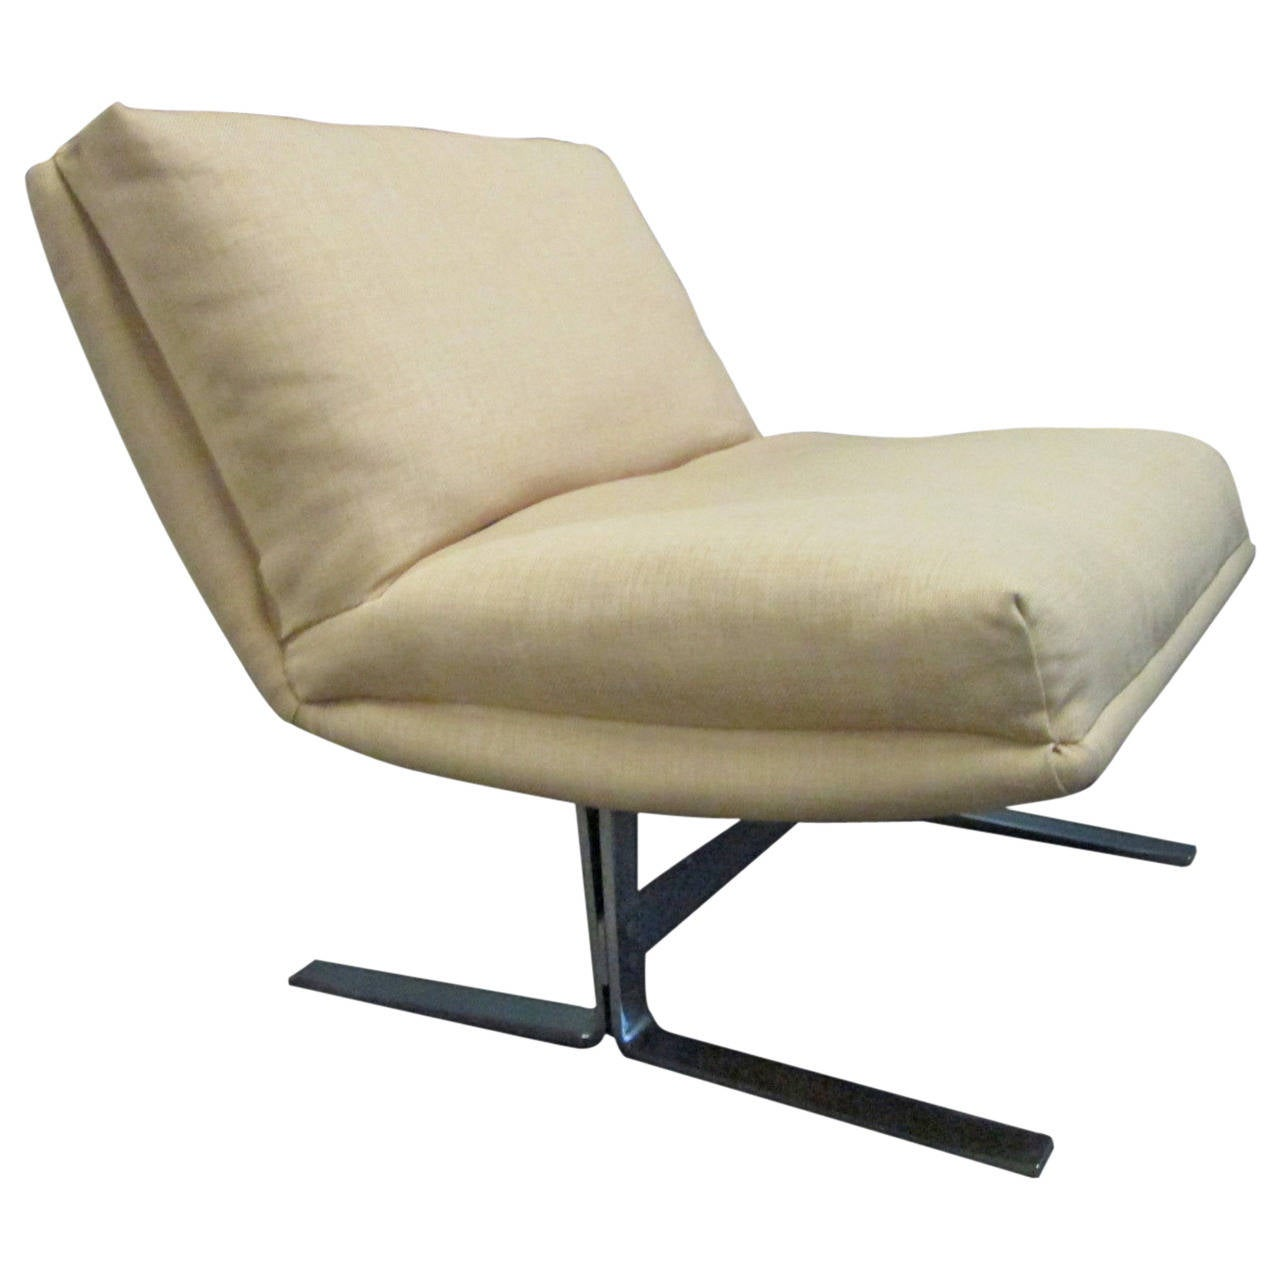 Chrome Lounge Chair by Design Institute of America